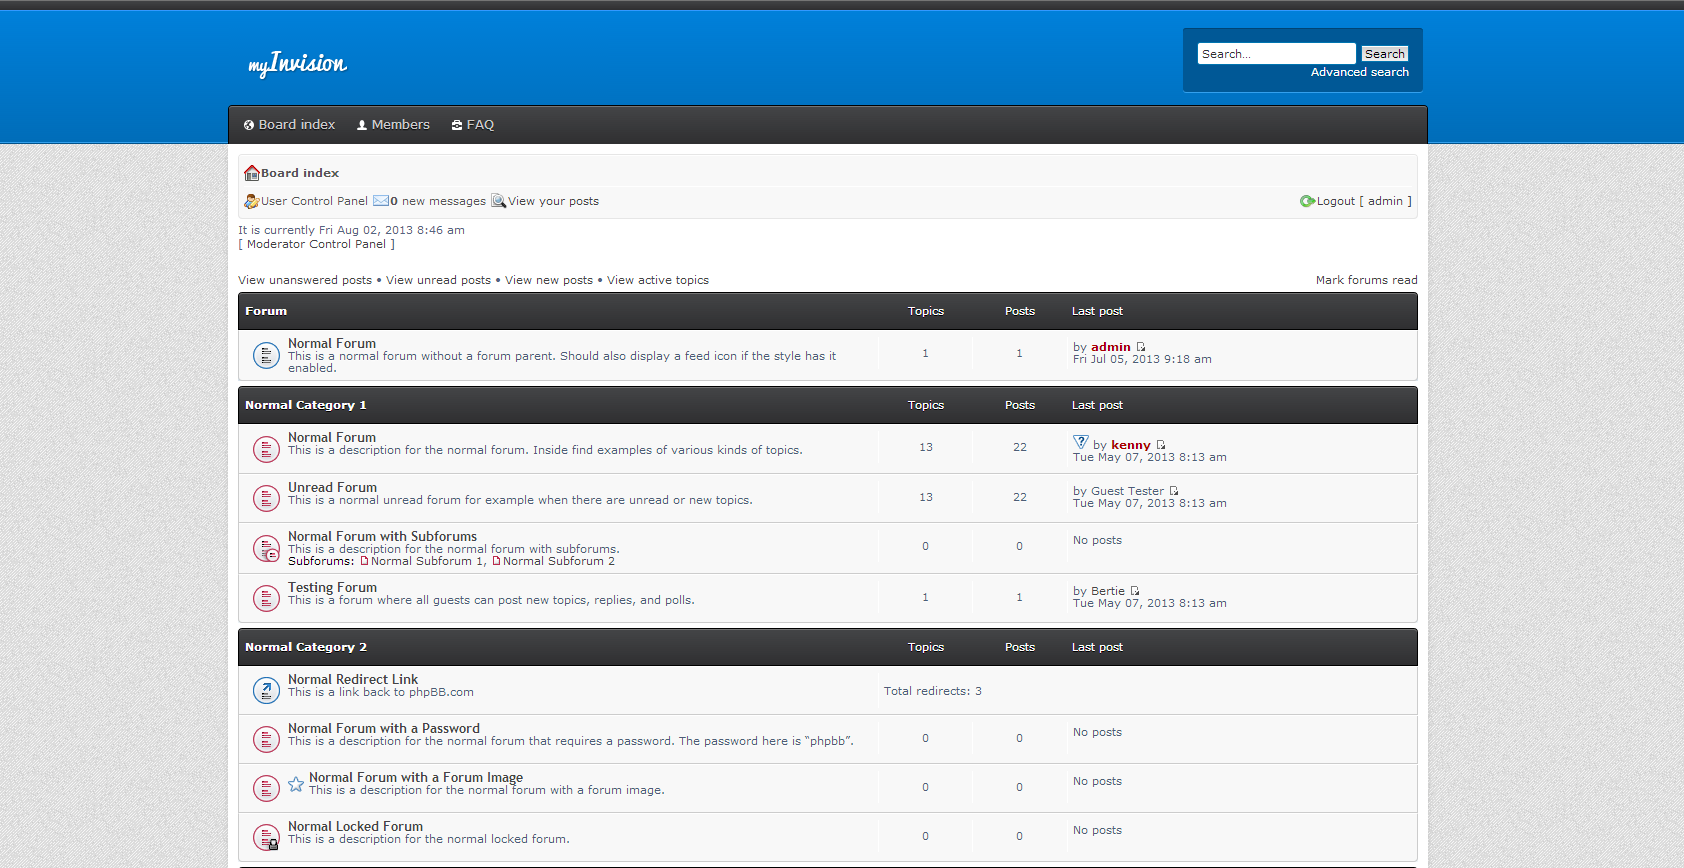 phpBB • MyInvision - Contribution Details